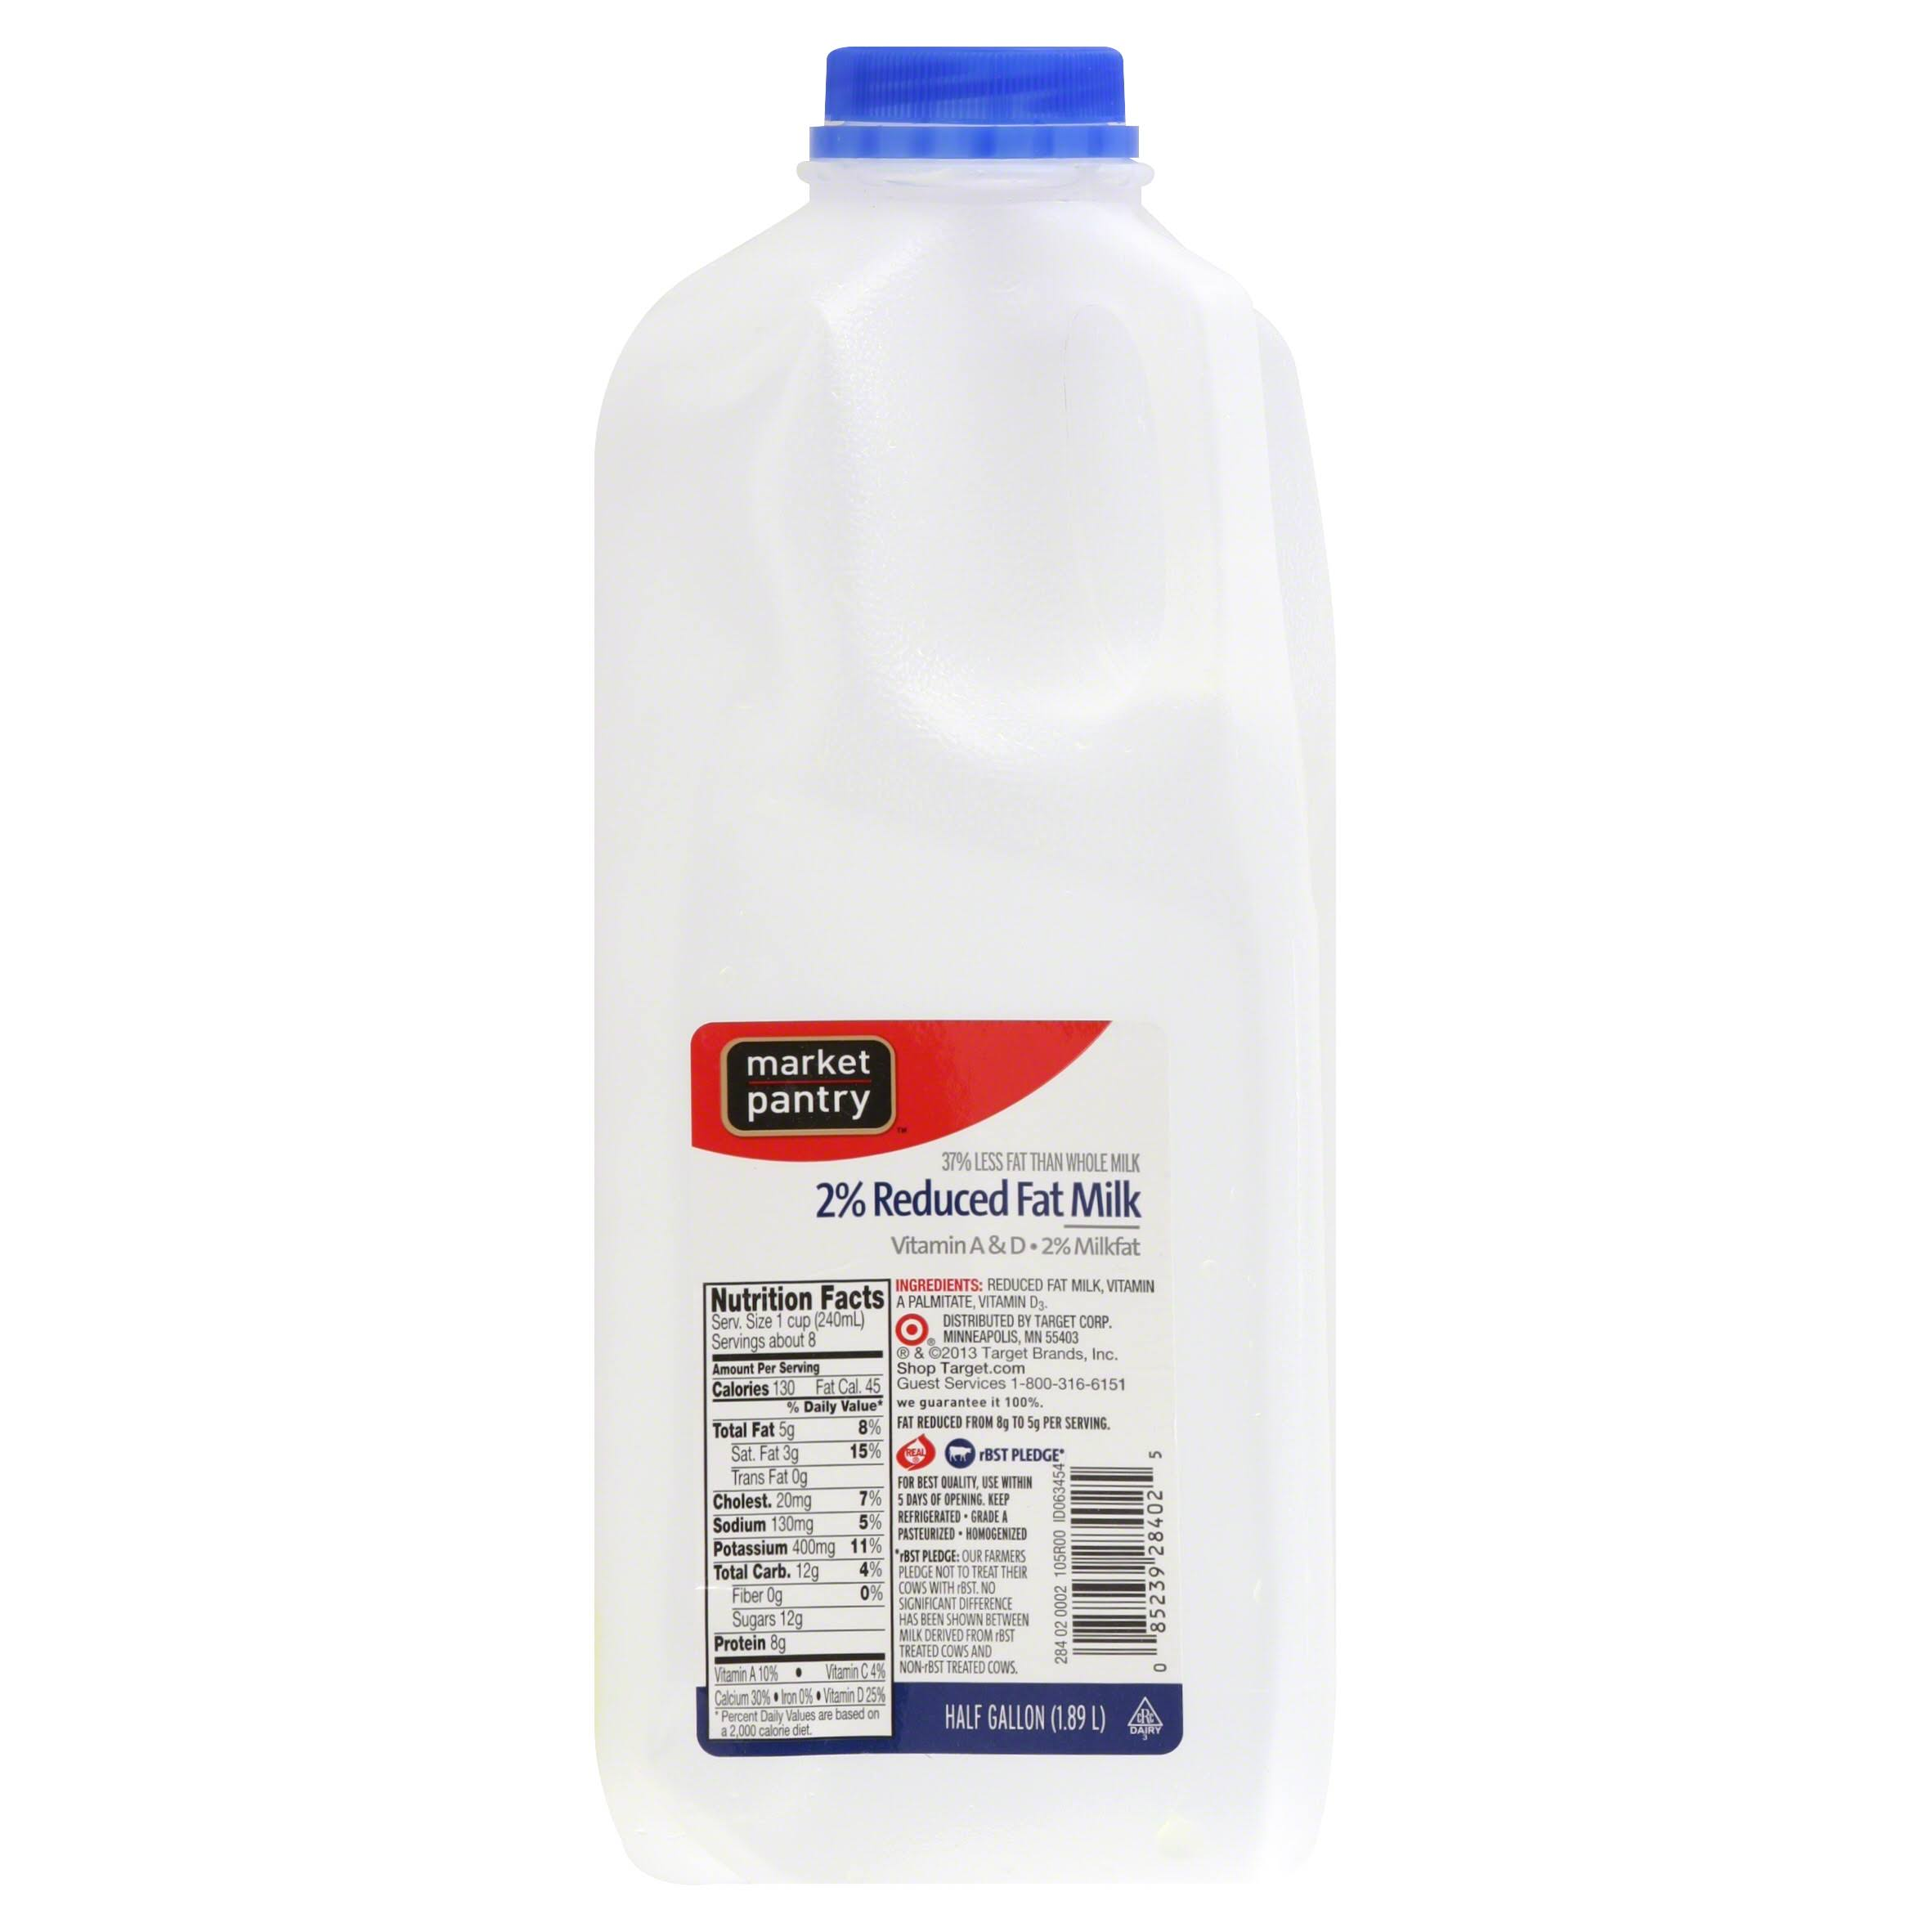 Market Pantry 2% Reduced Fat Milk - 64 fl oz jug